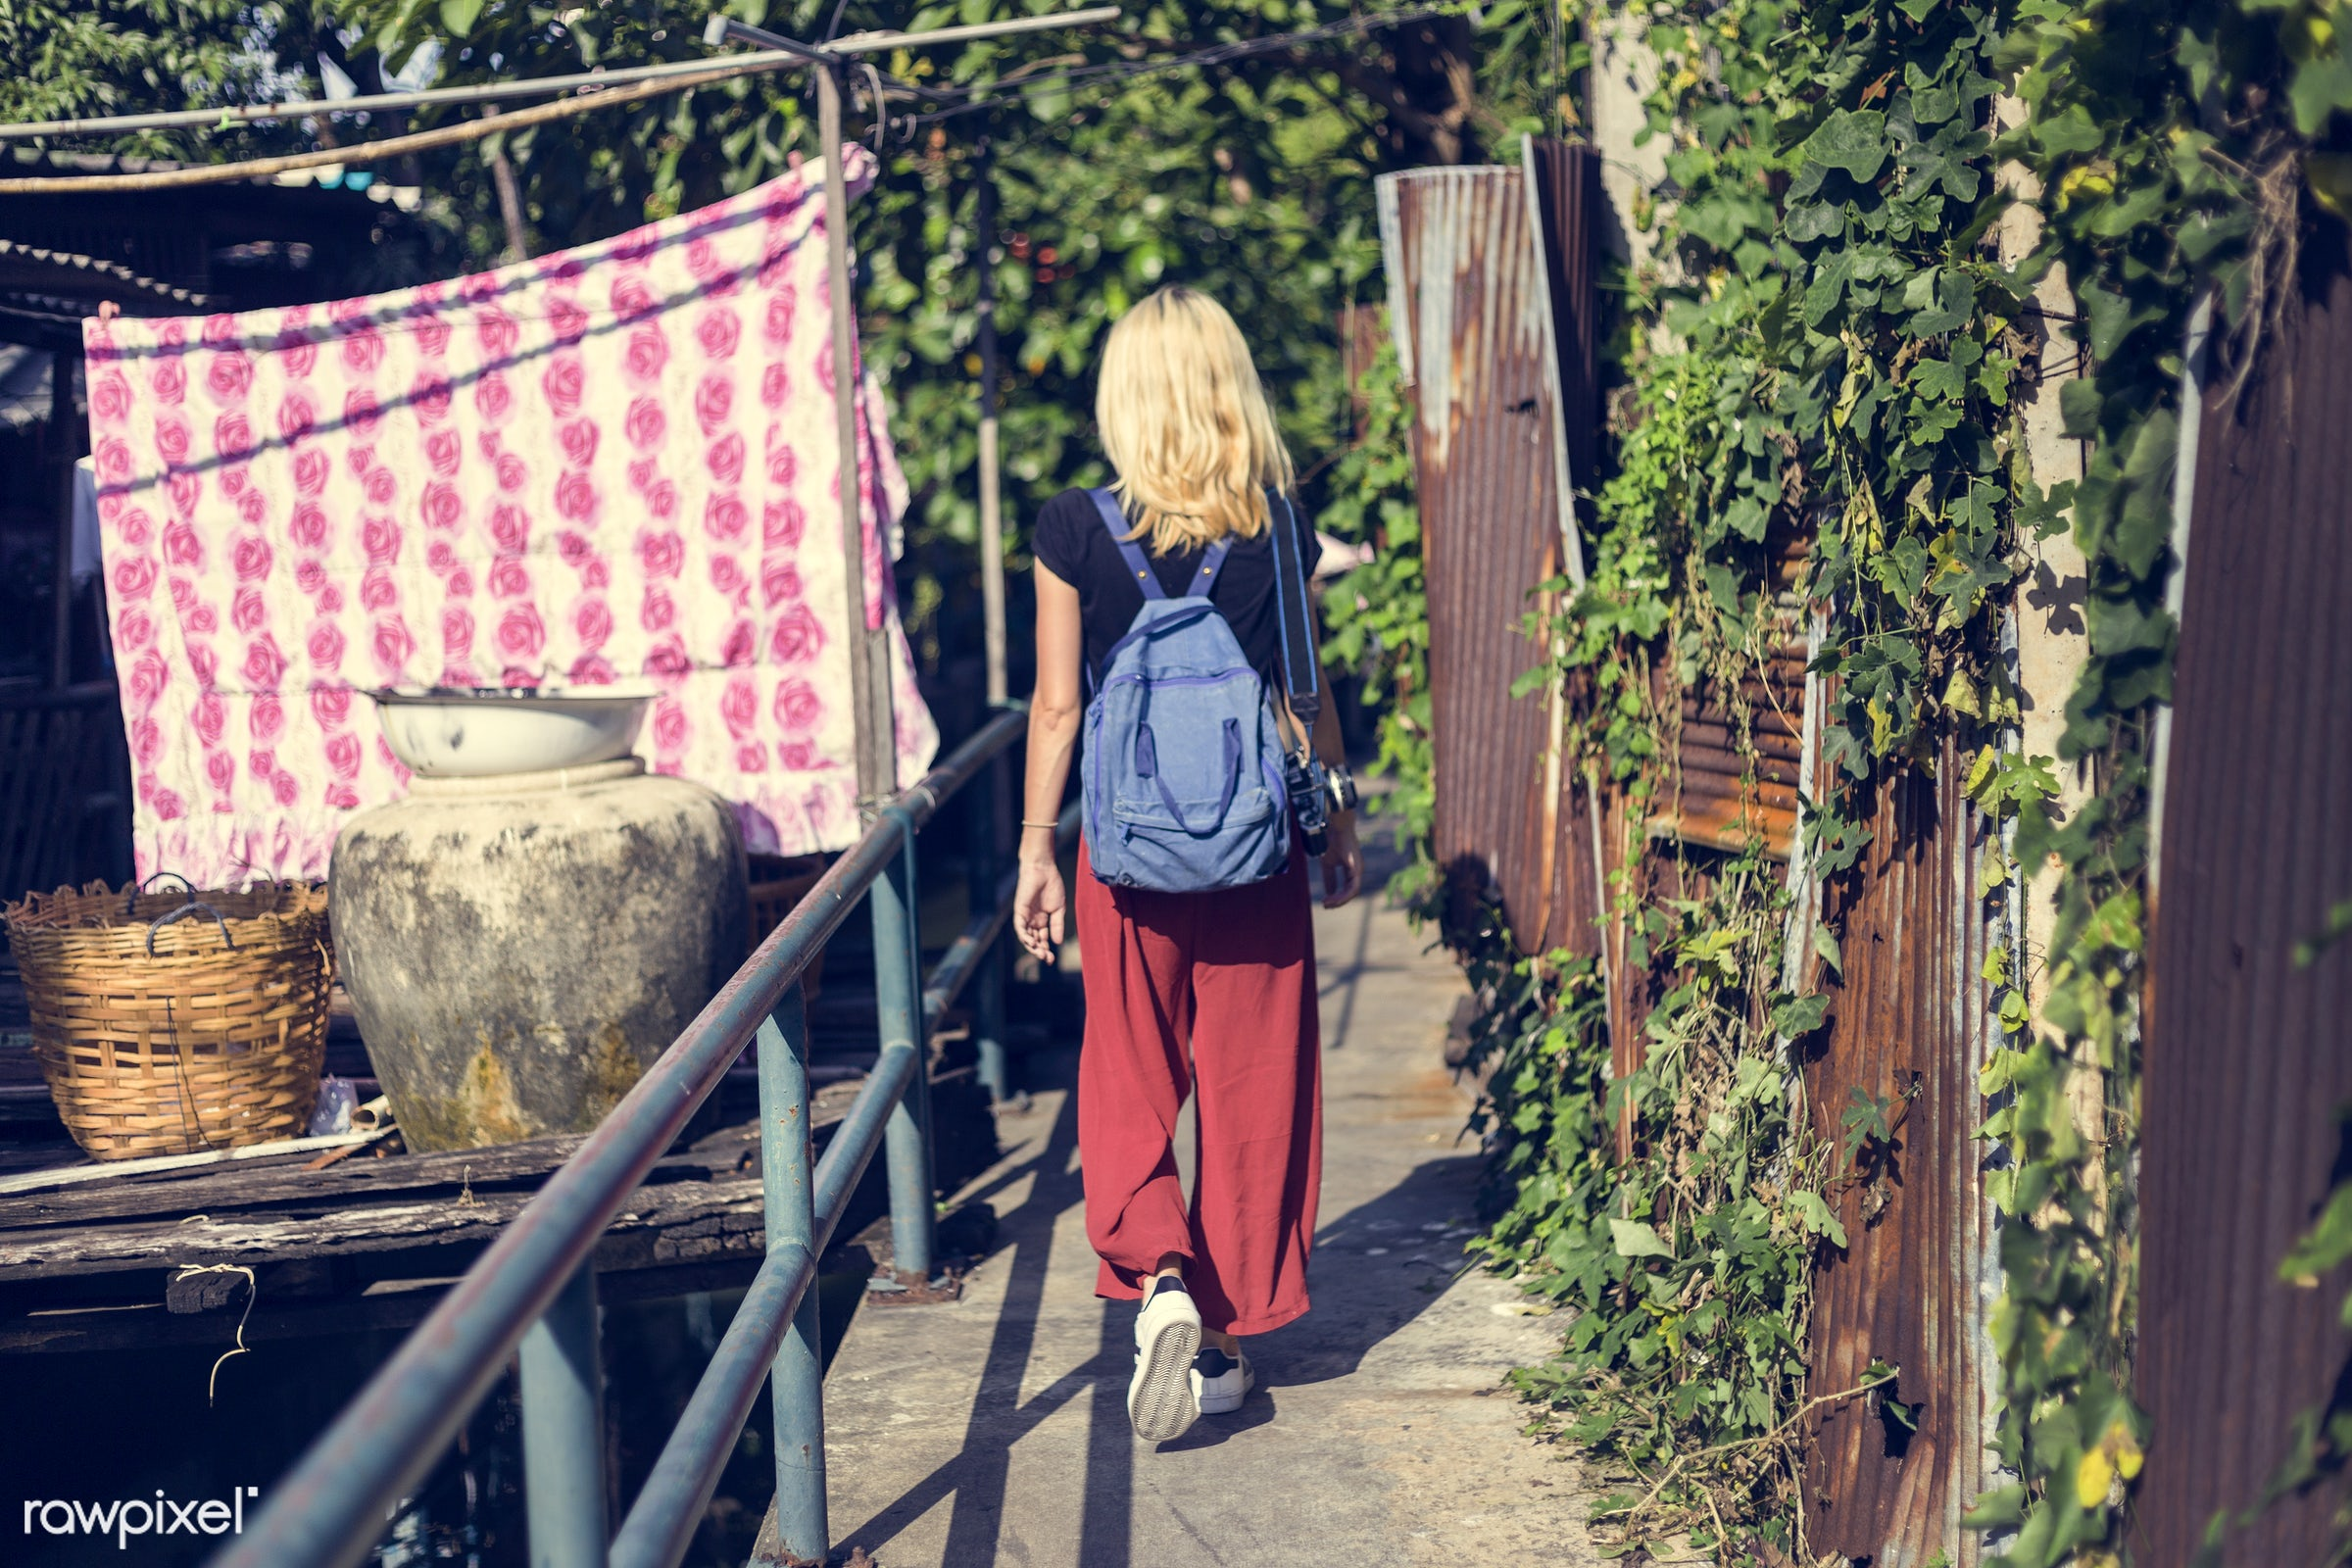 alley, alone, back, bag, blonde, canal, caucasian, explore, female, one, outdoors, people, person, solo, sweden, swedish,...